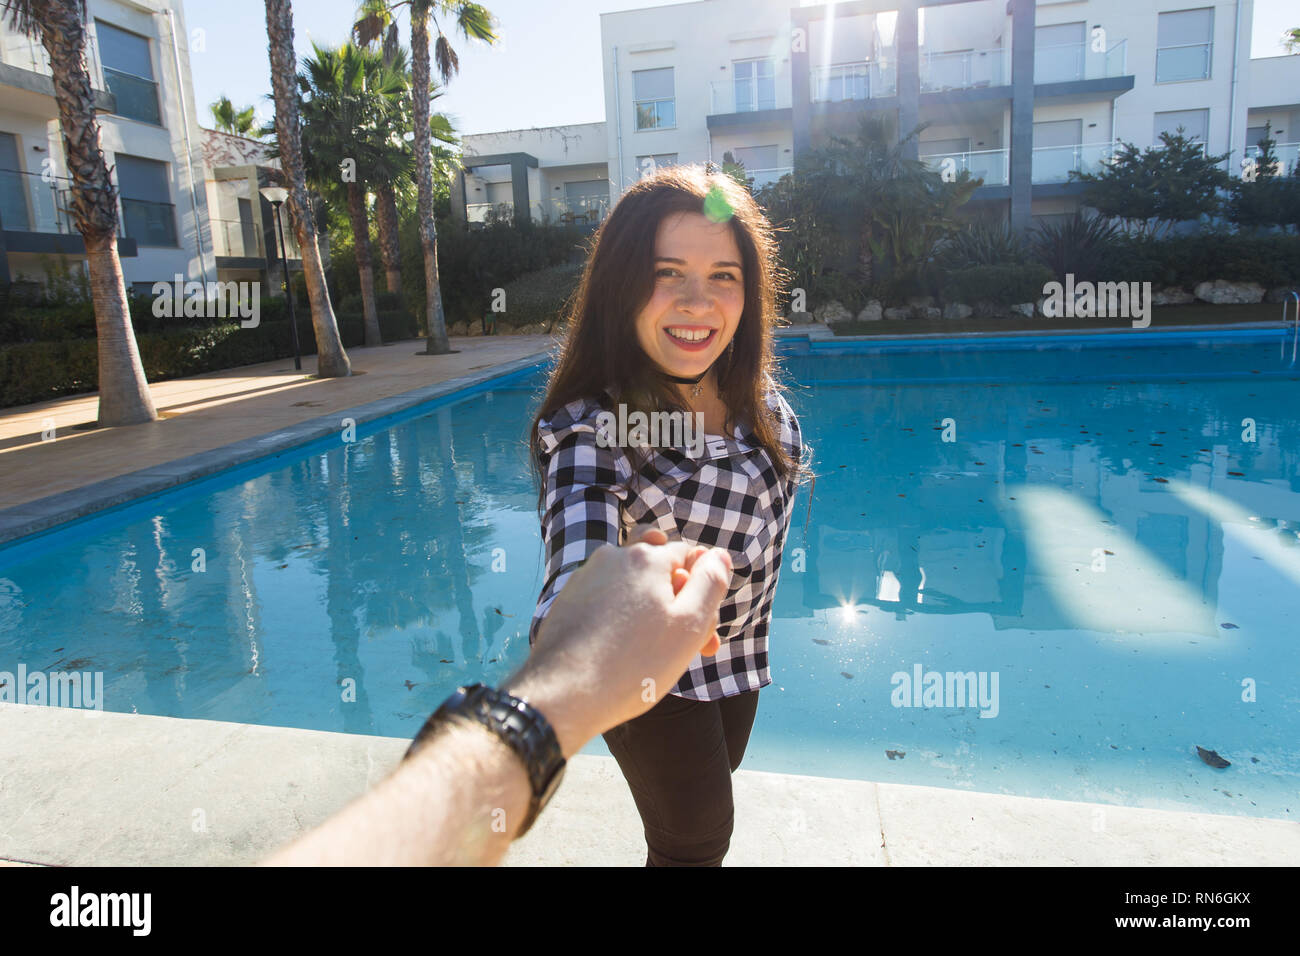 Follow Me Vacation Concept Happy Young Woman Holding Boyfriend S Hand At Resort Near Swimming Pool Stock Photo Alamy